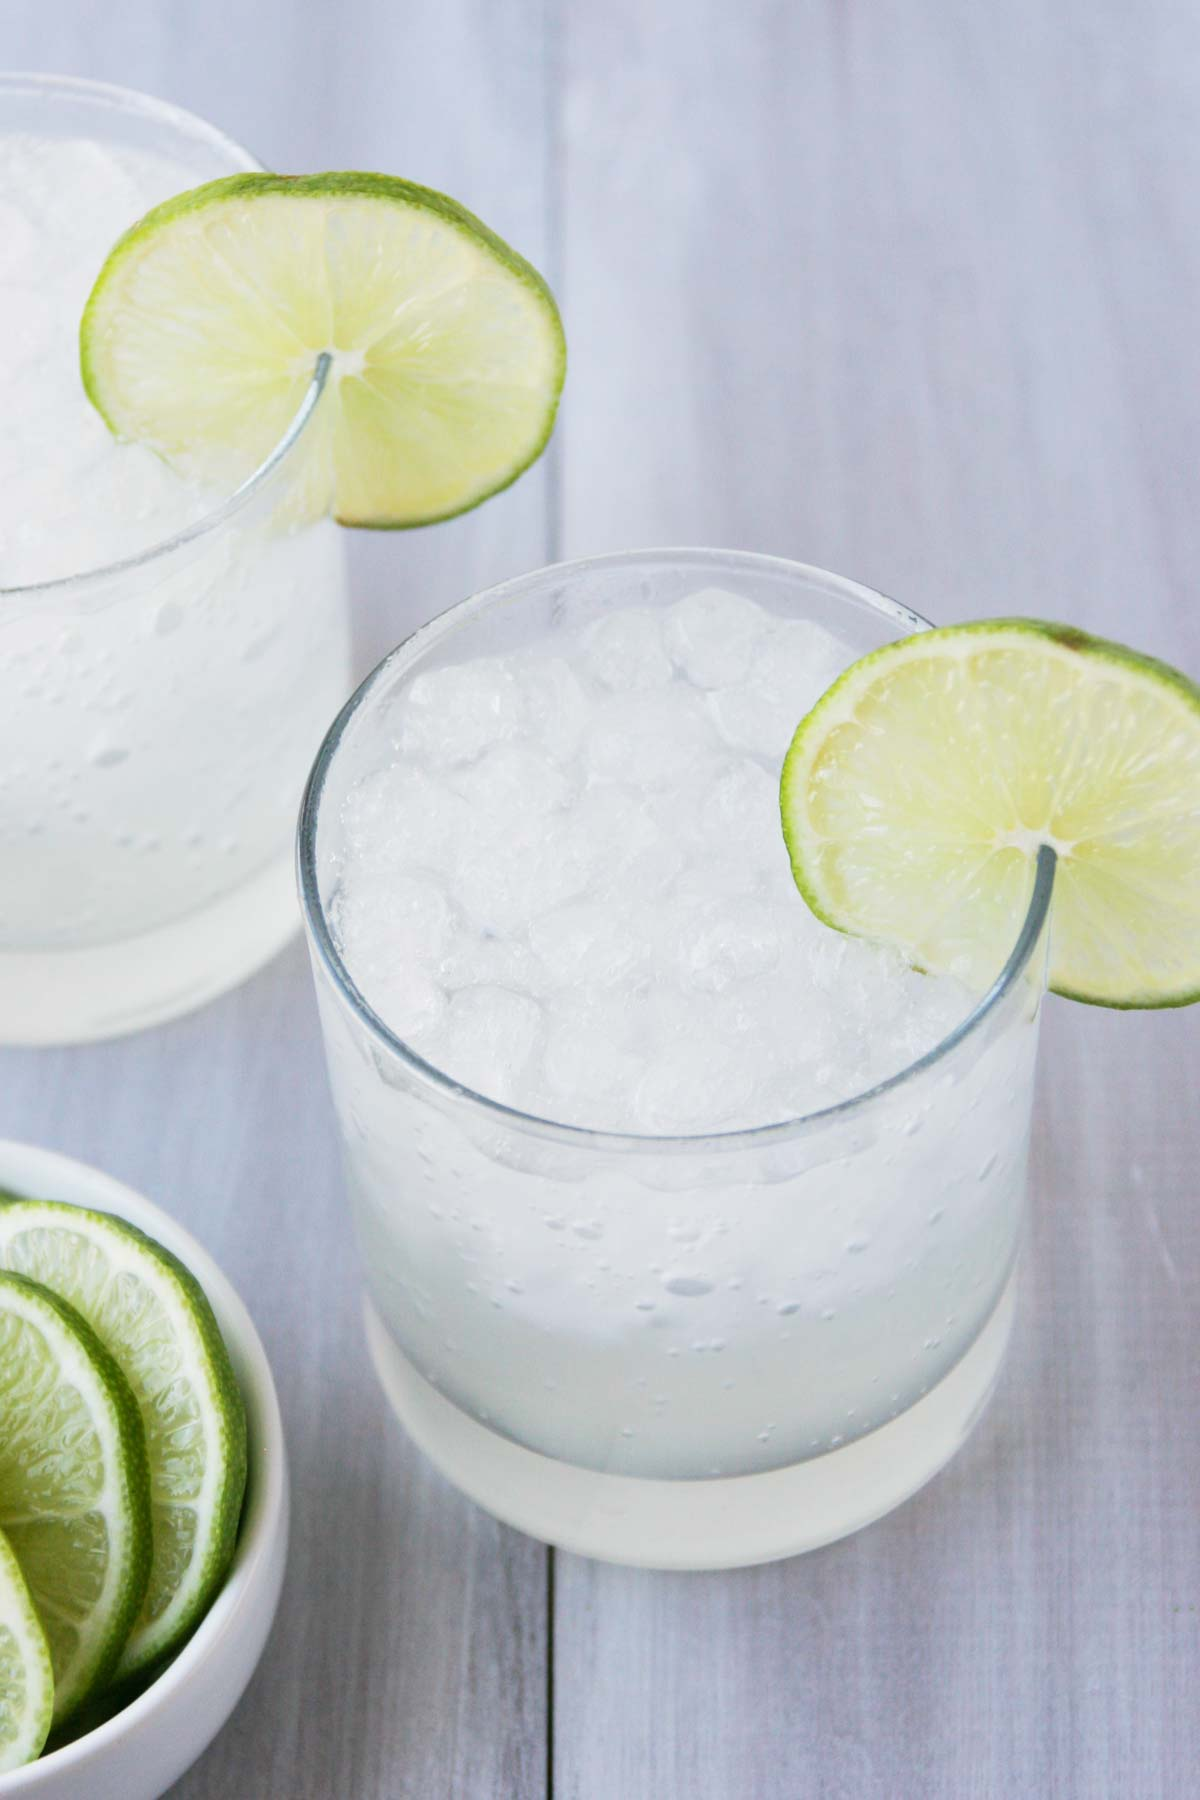 mocktail made with ginger and lime in a cup with ice and lime slices